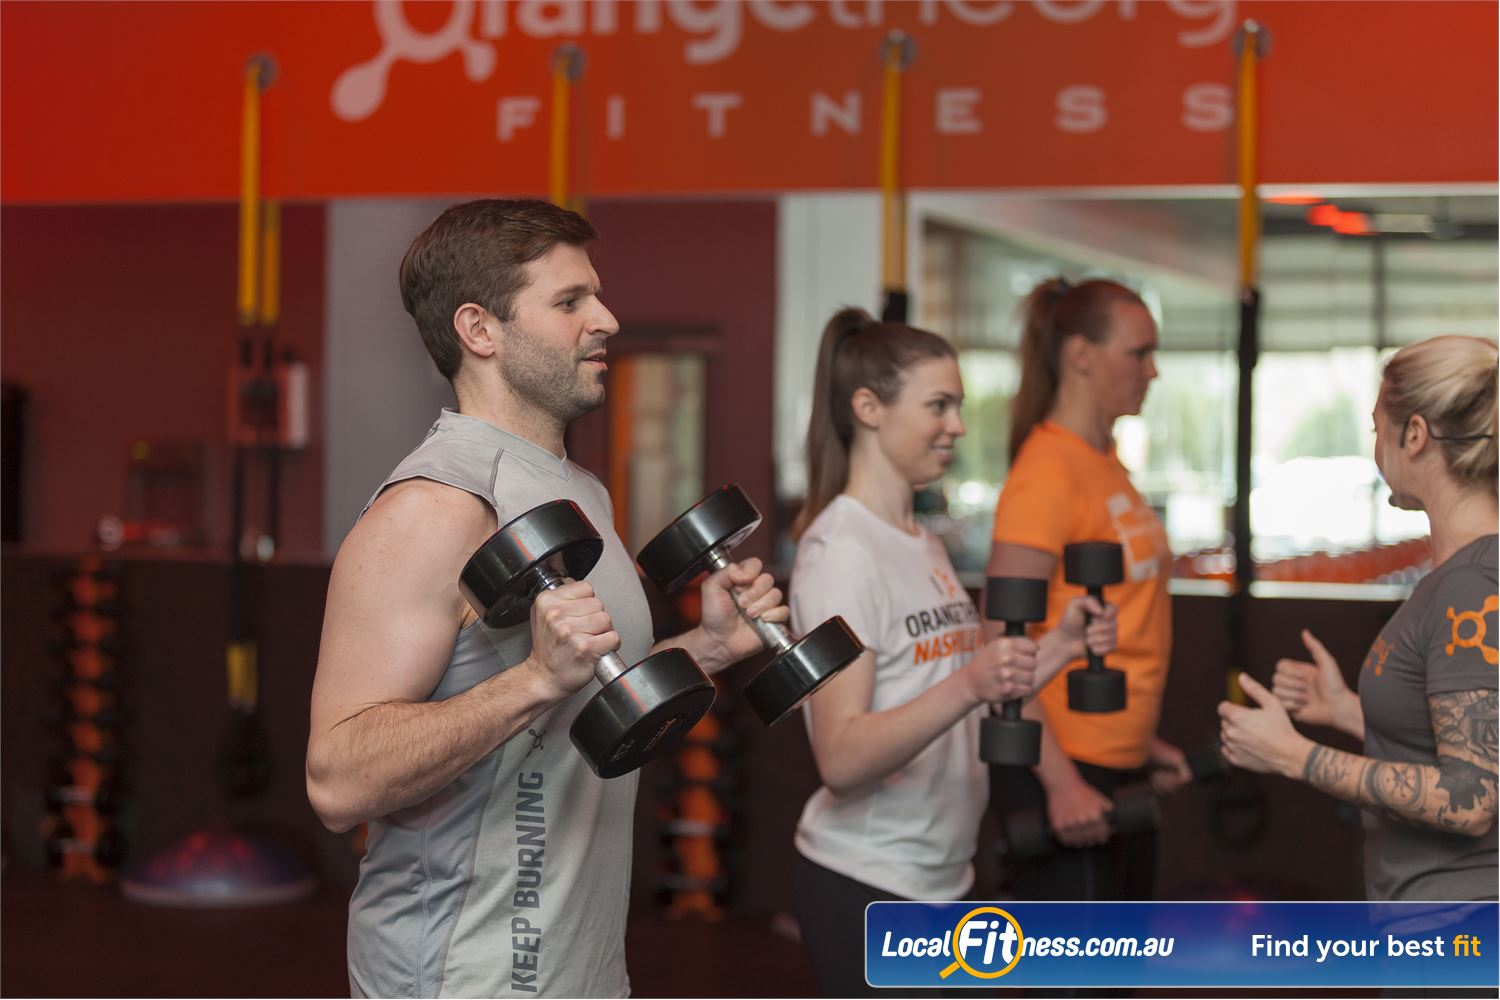 Orangetheory Fitness Hawthorn Hawthorn personal training in a group class setting.